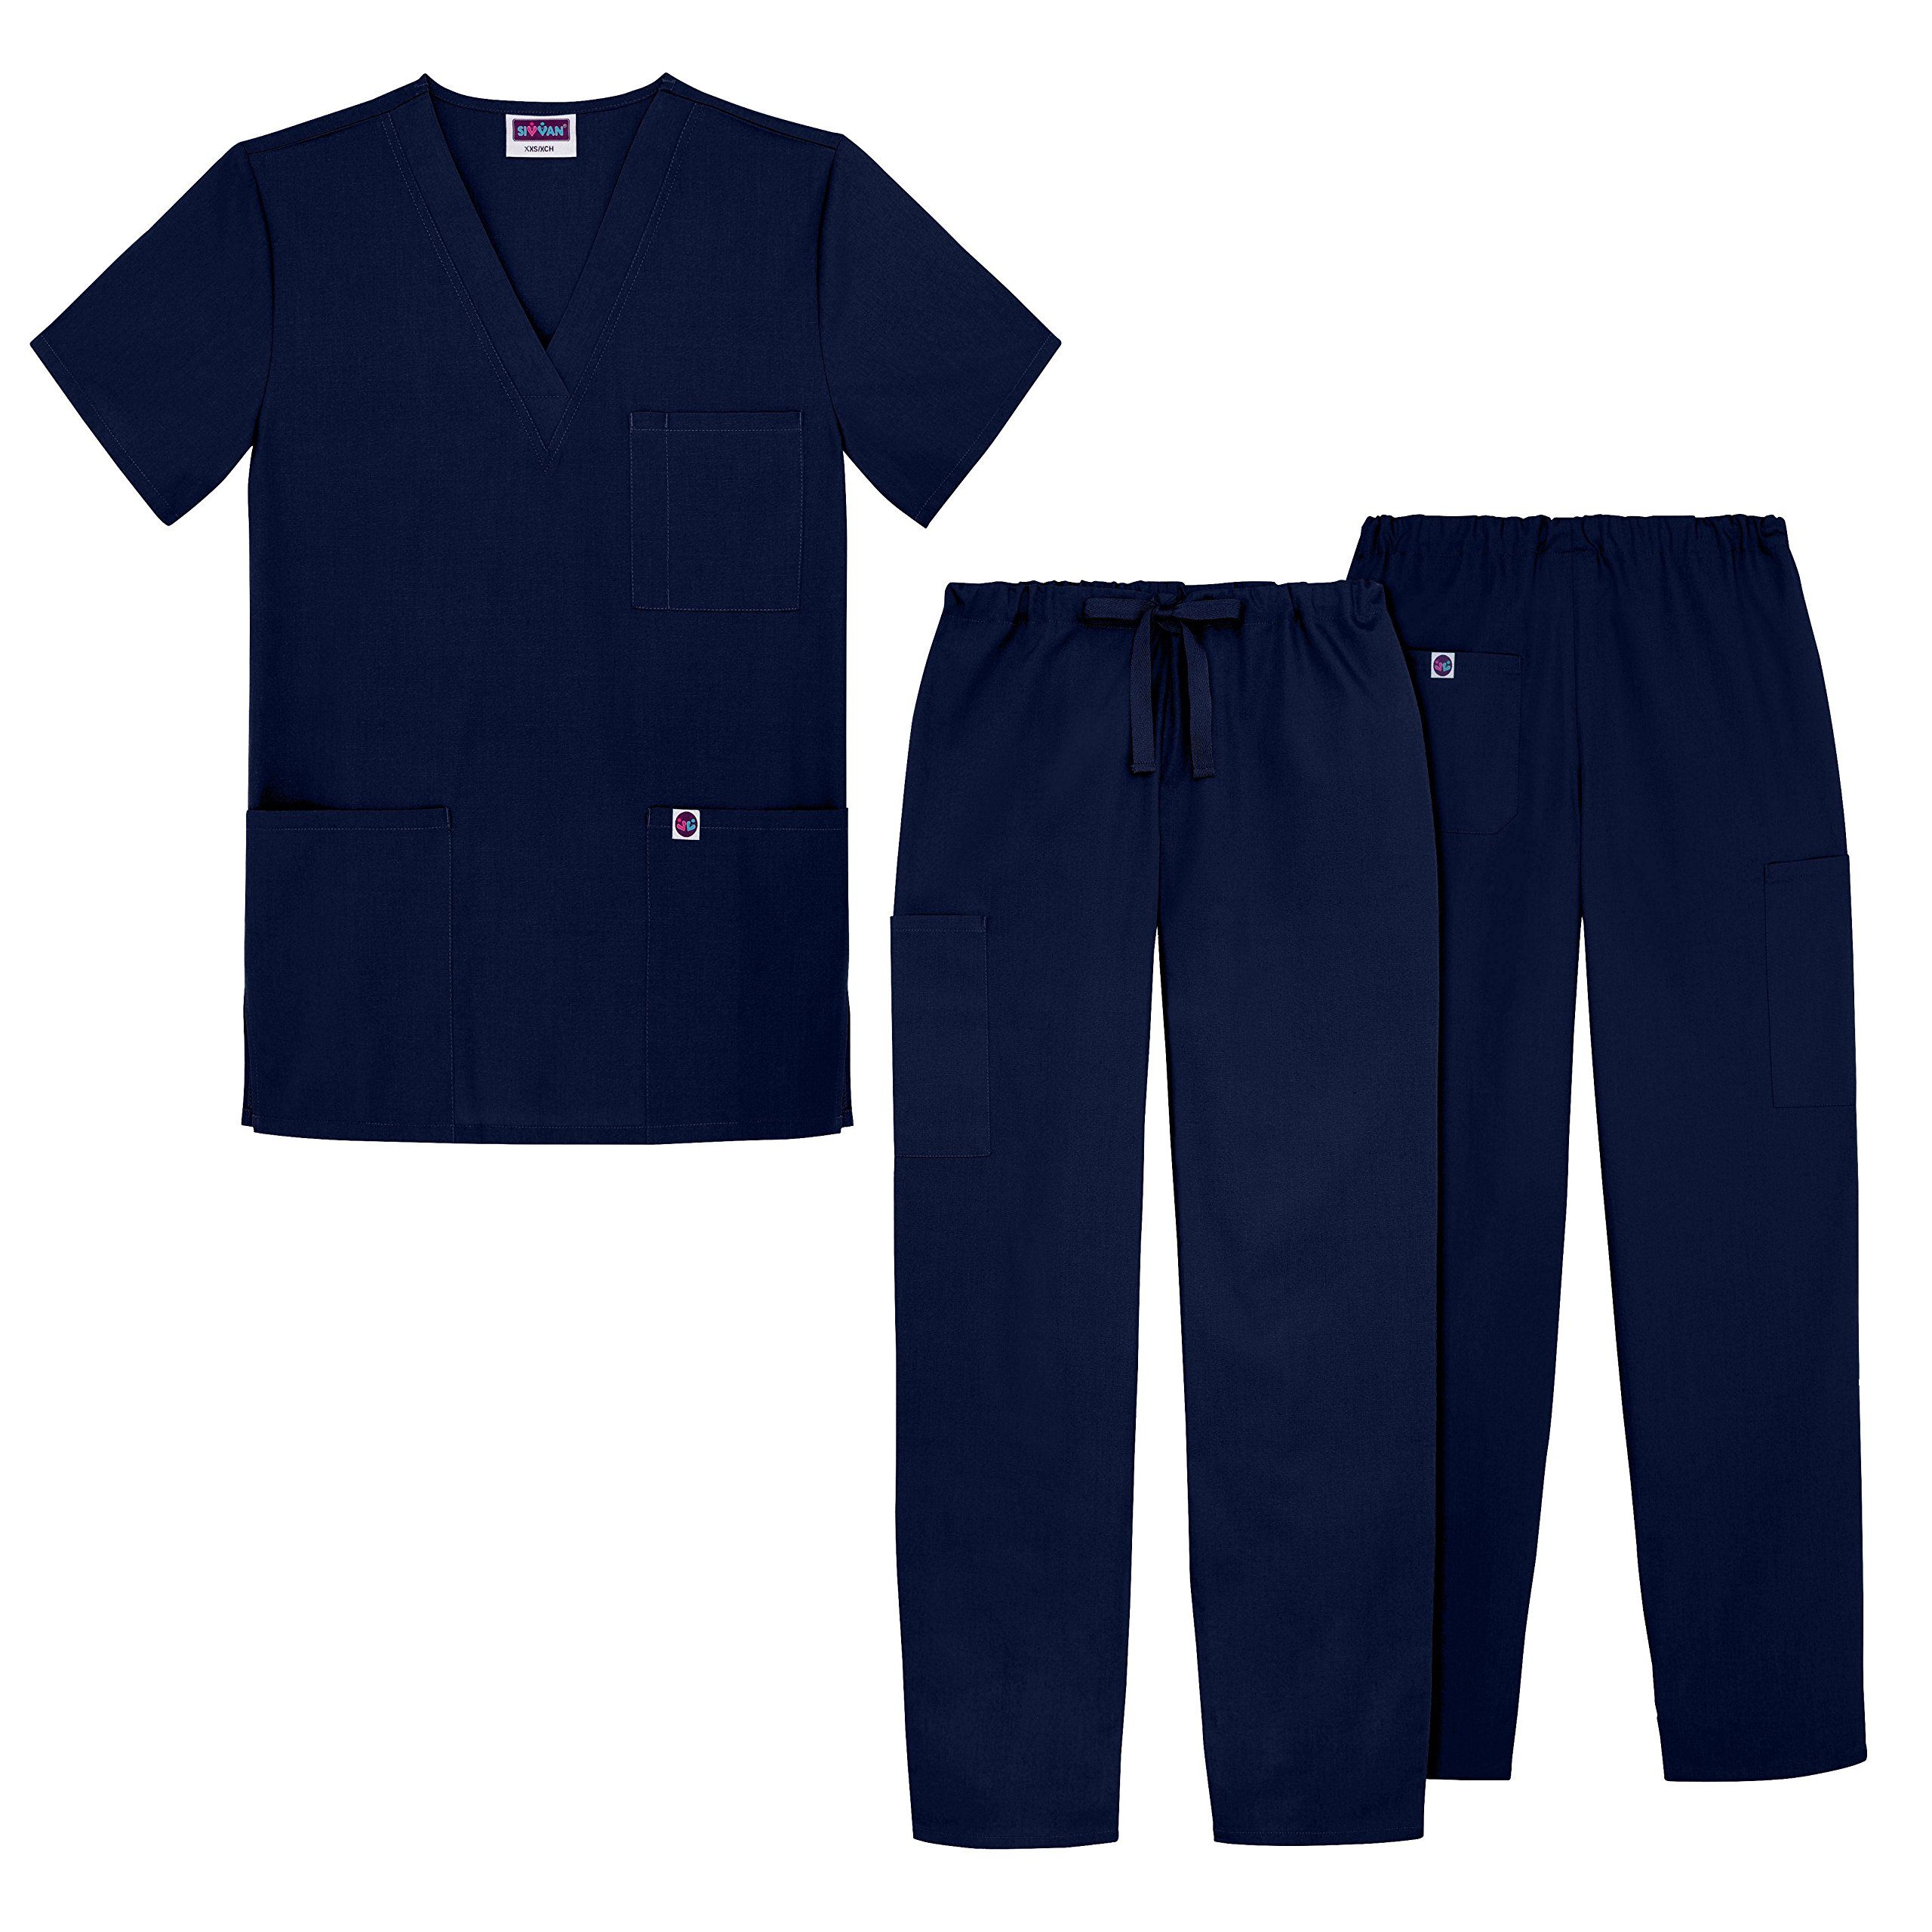 Sivvan Unisex Classic Scrub Set V-neck Top / Drawstring Pants (Available in 12 Solid Colors) - S8400 - Navy - L